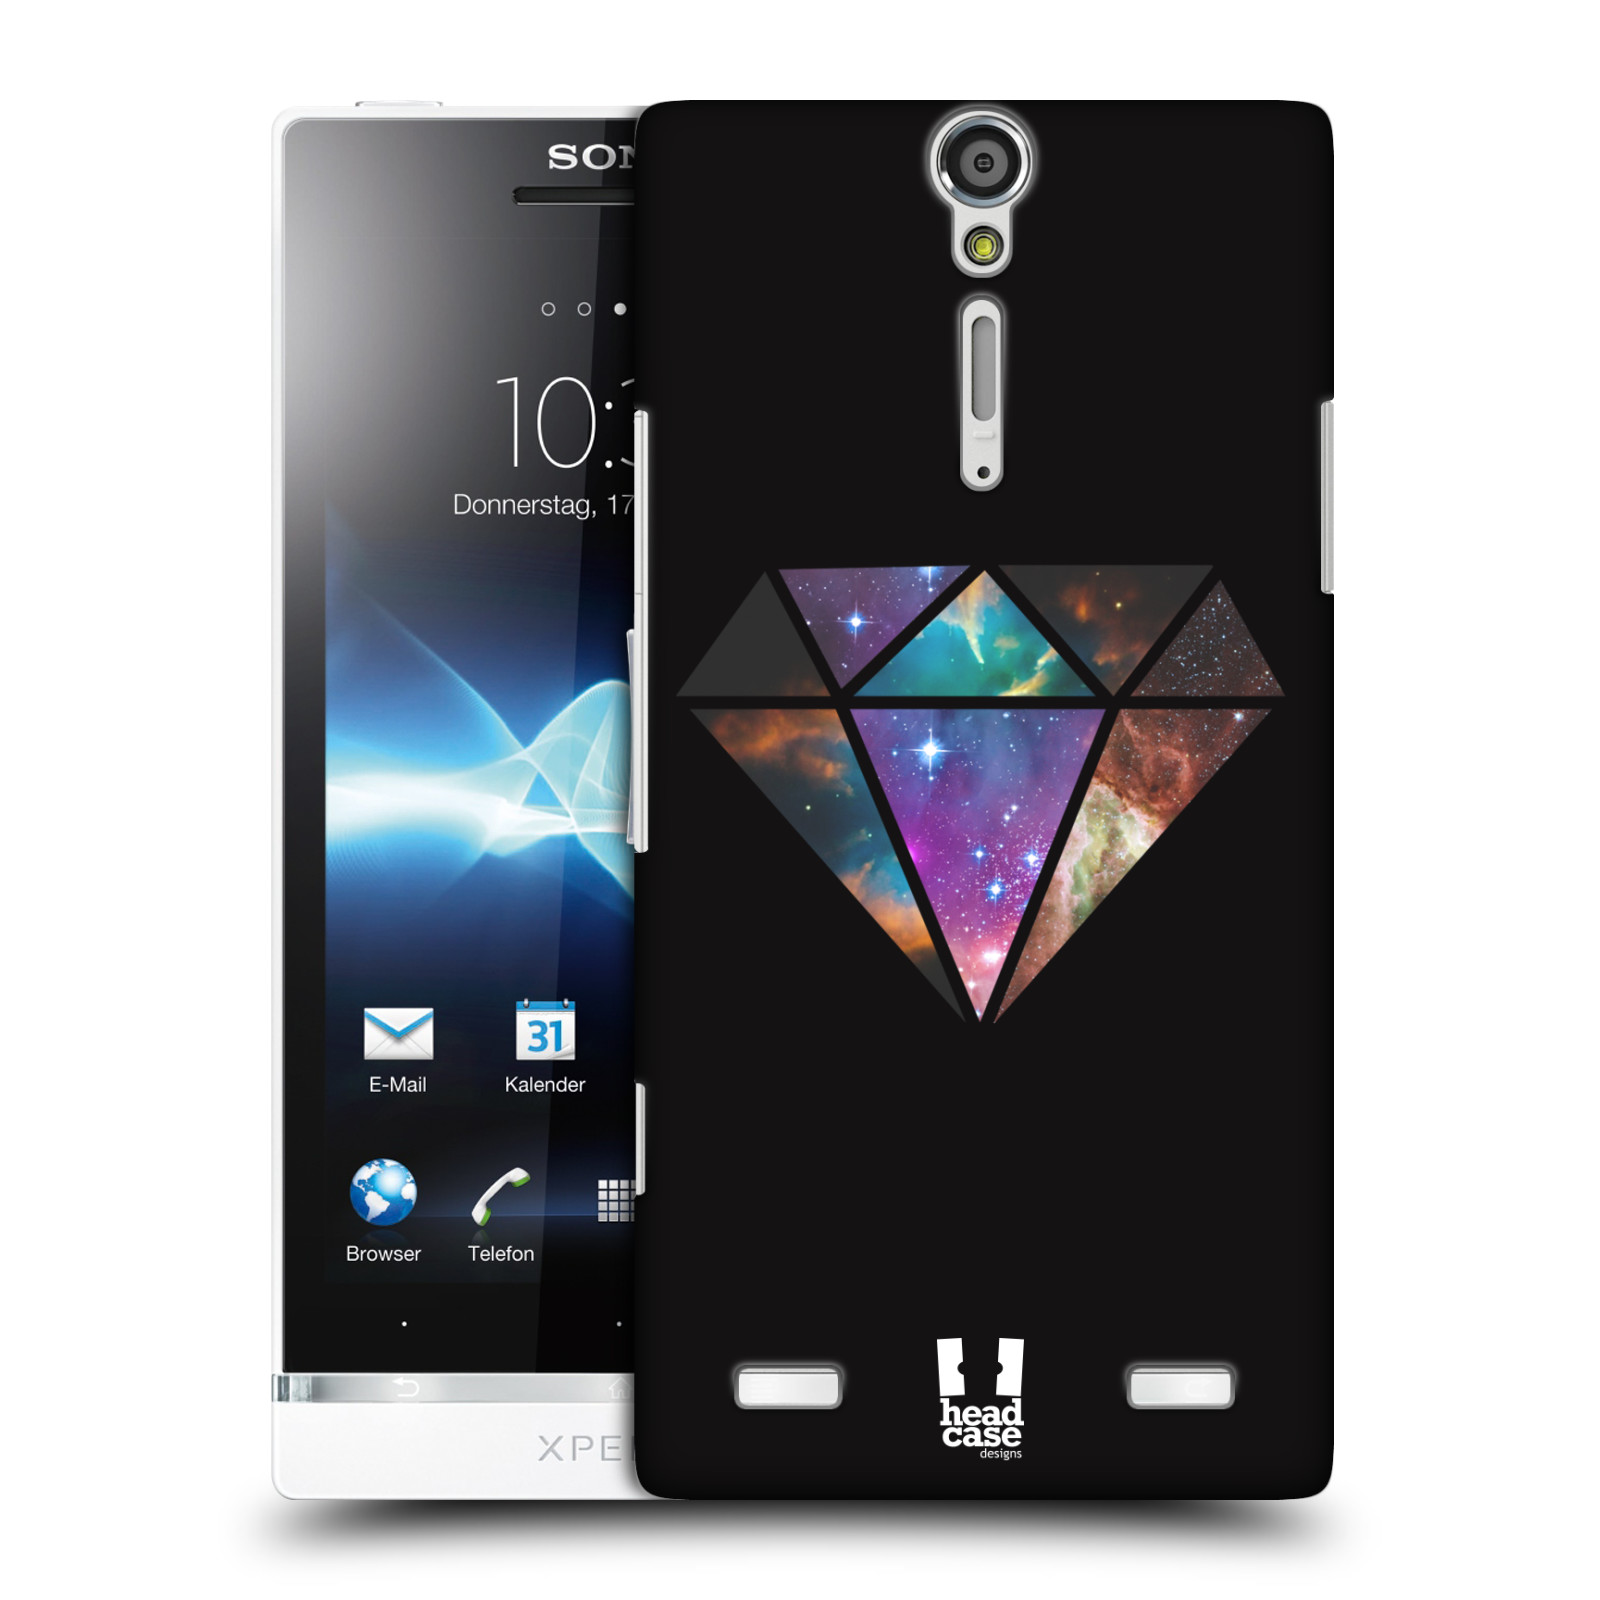 HEAD CASE DESIGNS TREND MIX HARD BACK CASE COVER FOR SONY XPERIA S LT26i